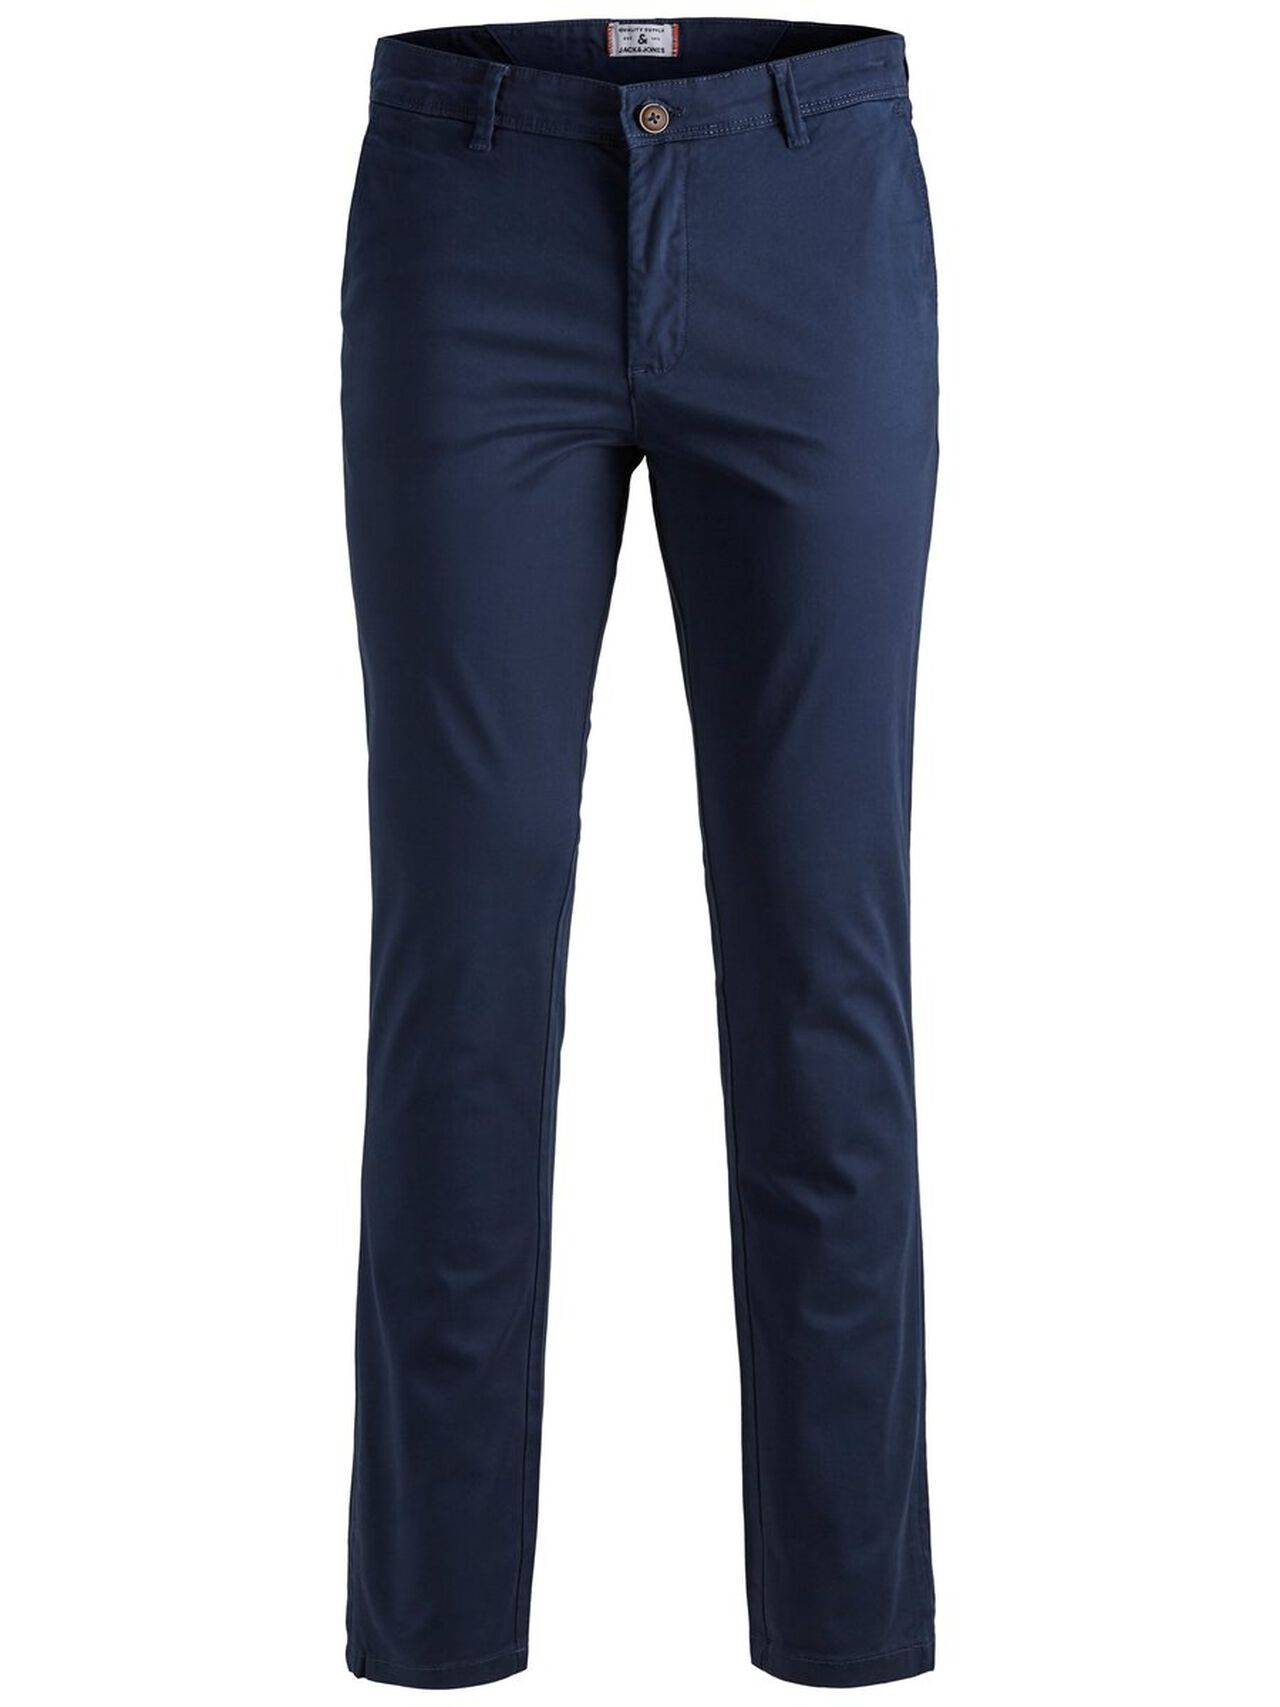 JACK & JONES Marco Bowie Sa Navy Blazer Slim Fit Chinos Men Blue NavyBlazer